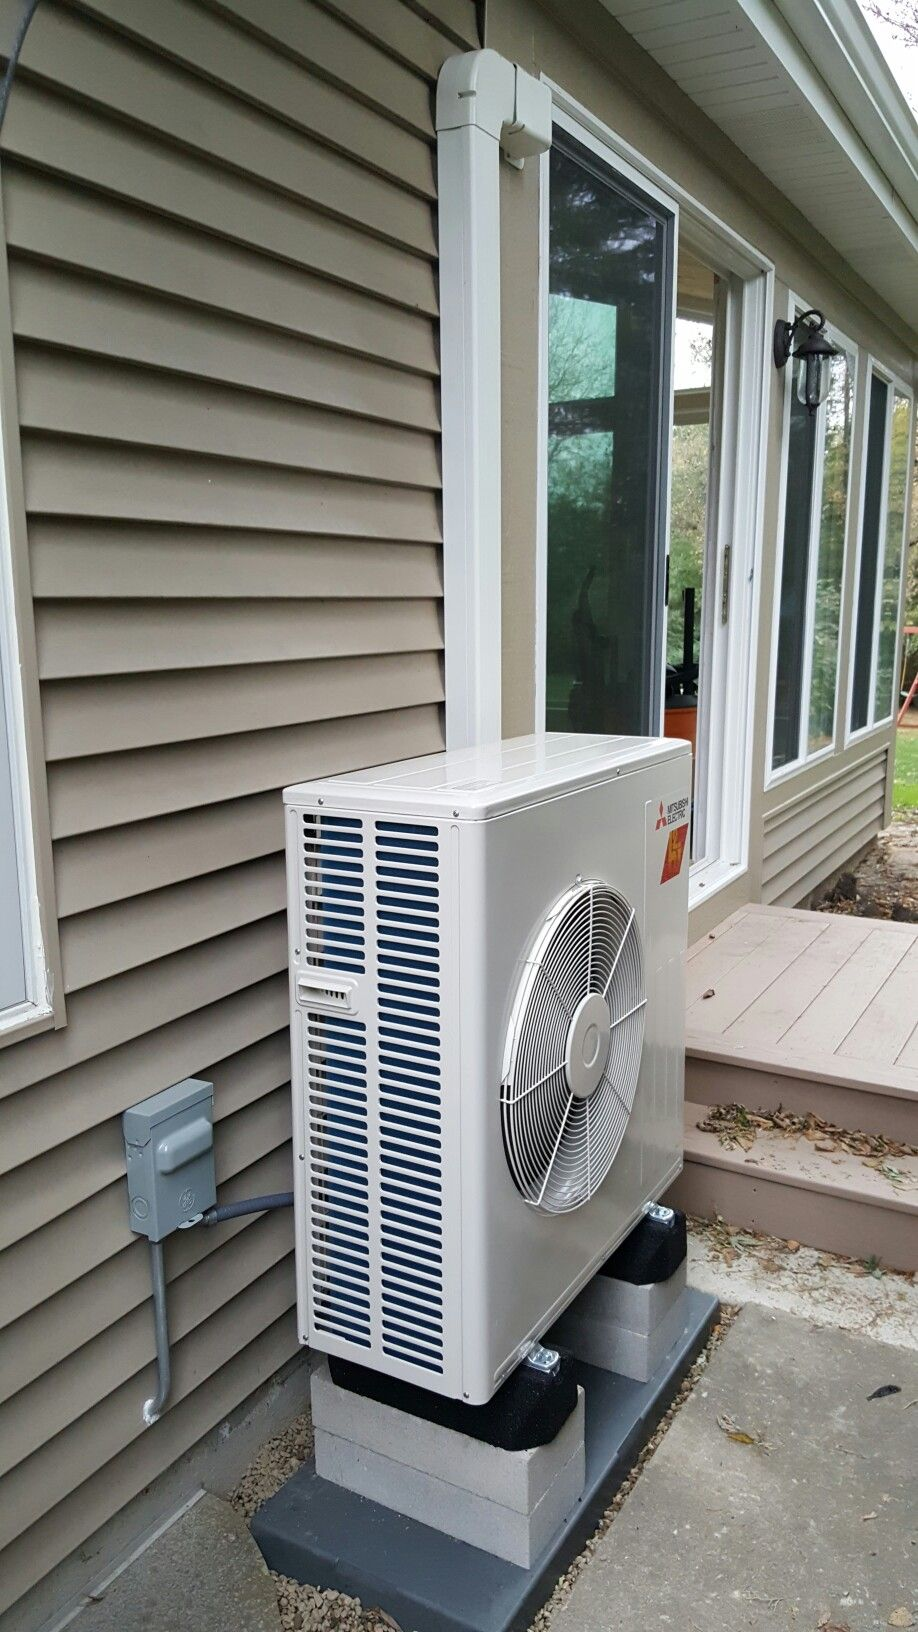 fh18 mitsubishi ductless heating and cooling system installed in a sunroom by a compass heating and air conditioning inc www compassheatingandair com [ 918 x 1632 Pixel ]